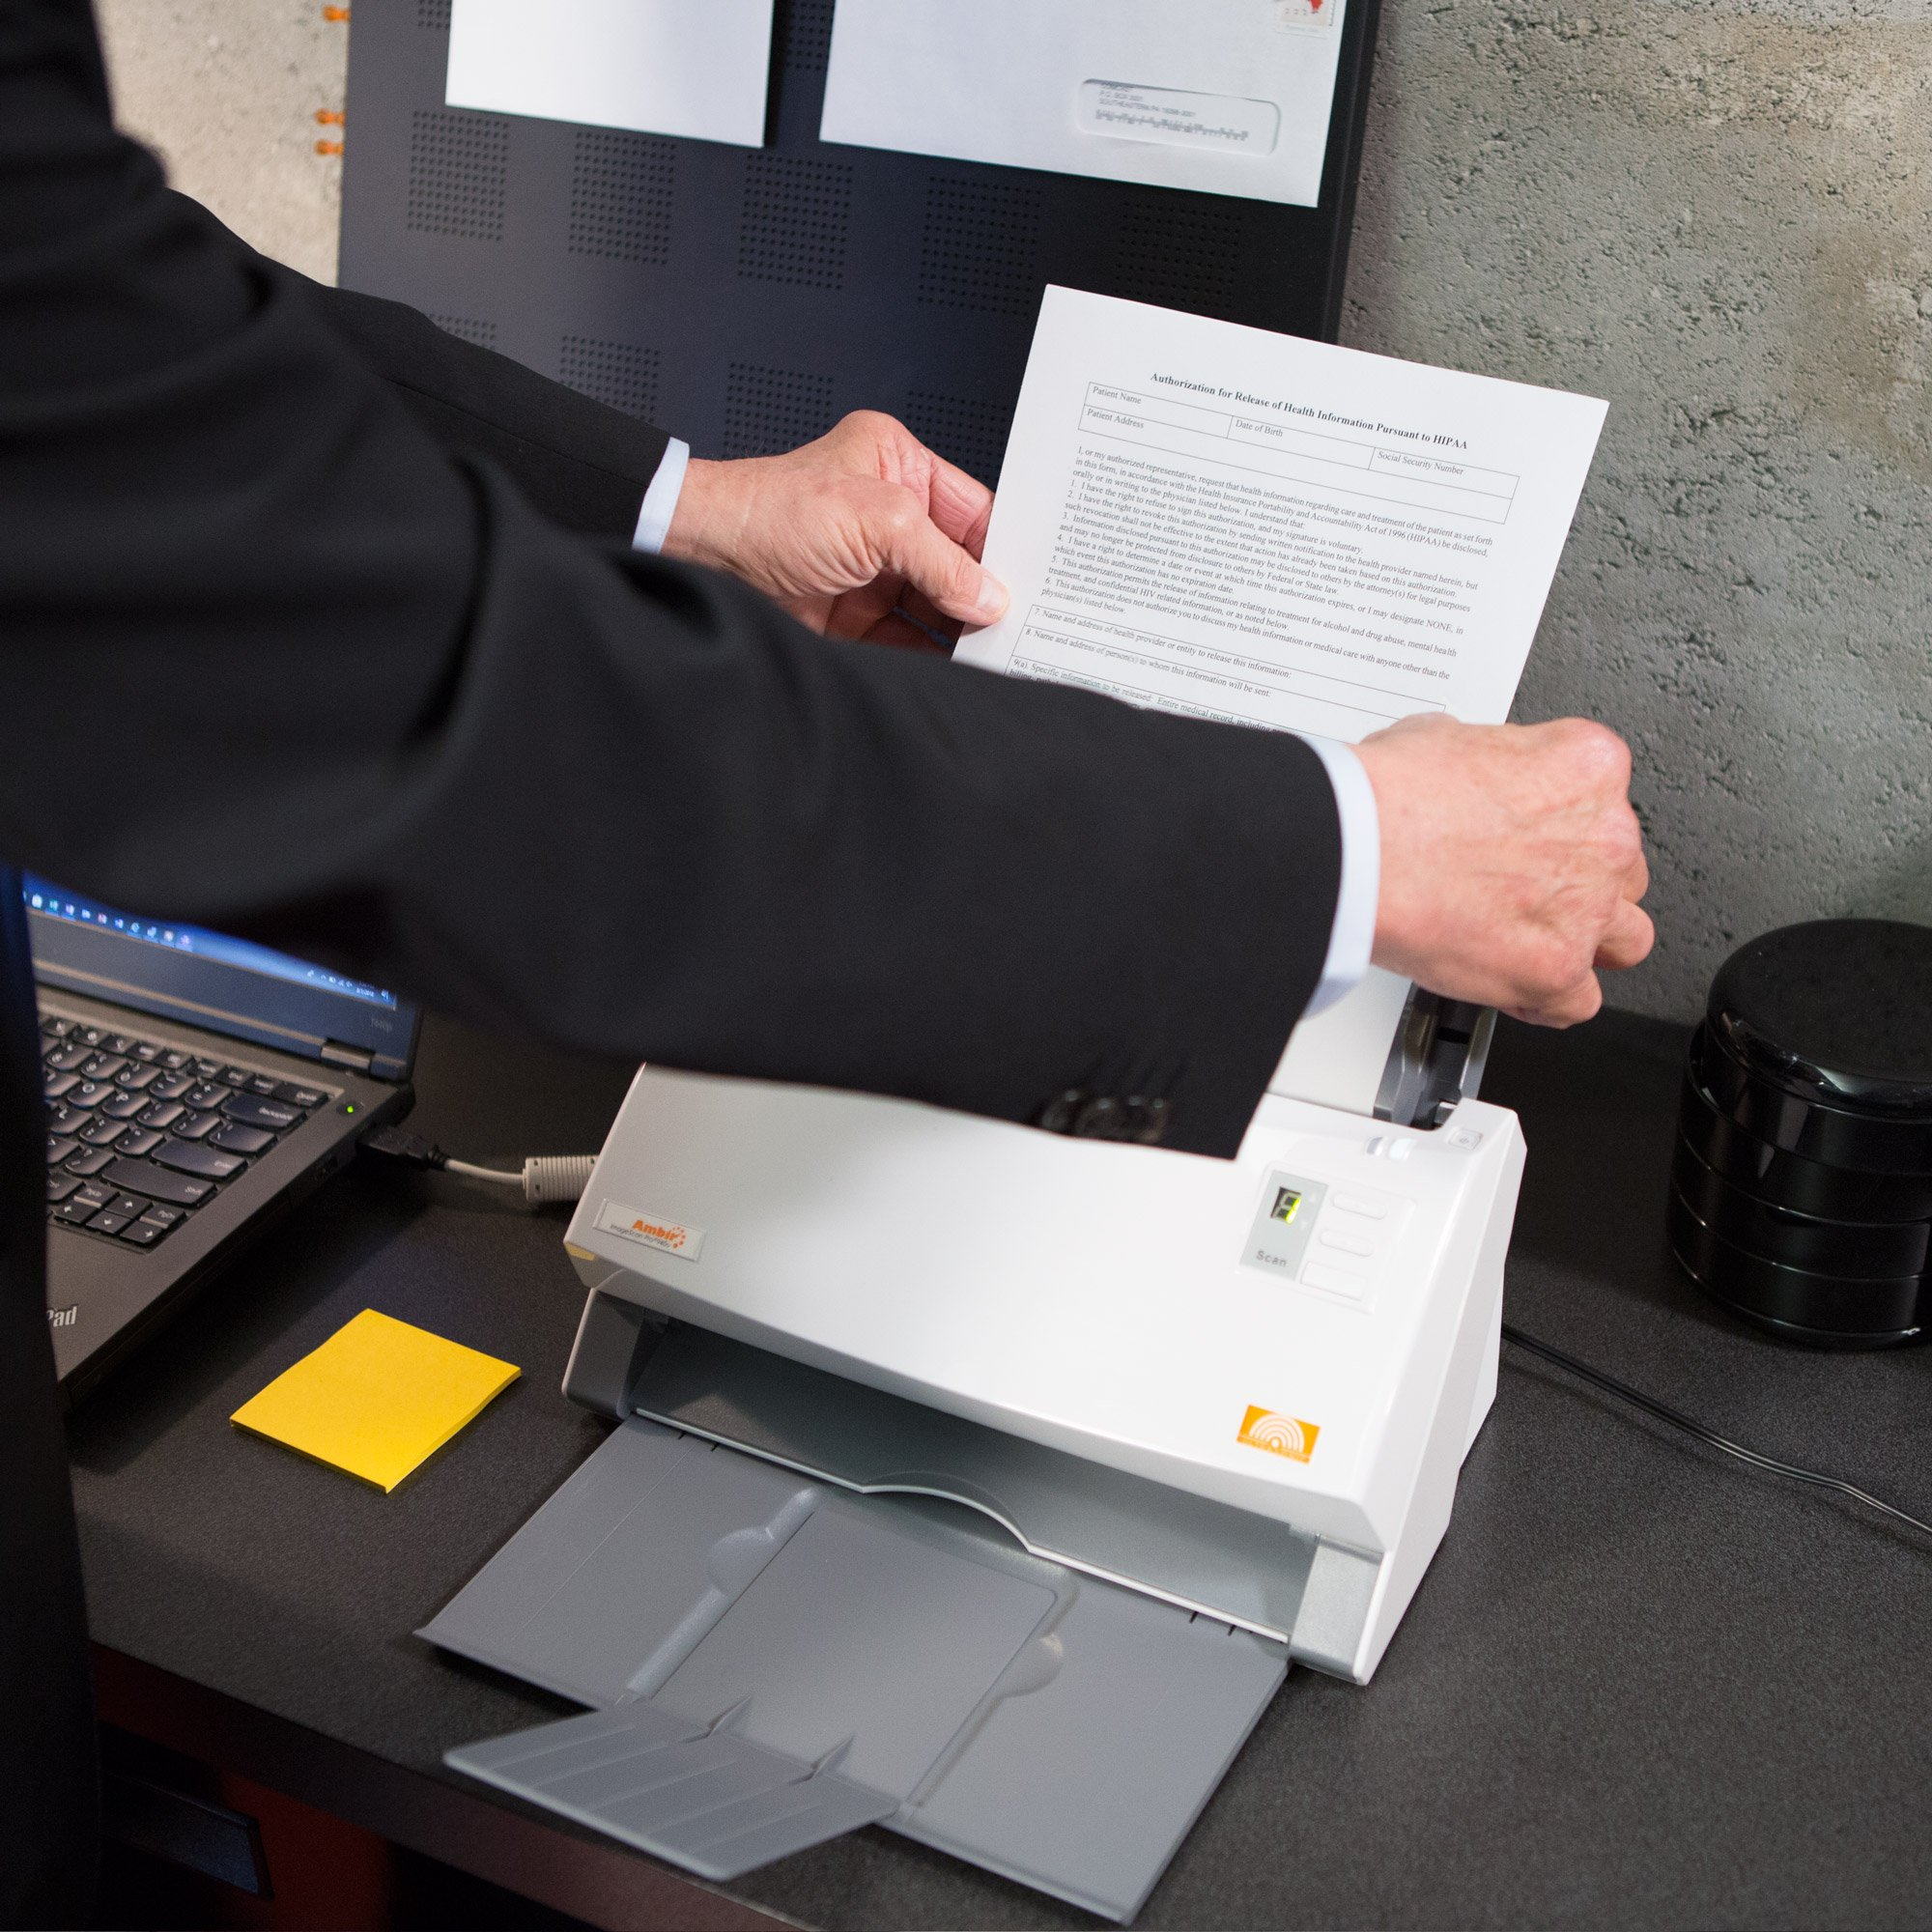 Ambir ImageScan Pro 940-NP 40ppm High-Speed Document Scanner with Full Version of Nuance Power PDF Software (DS940-NP) by Ambir (Image #3)